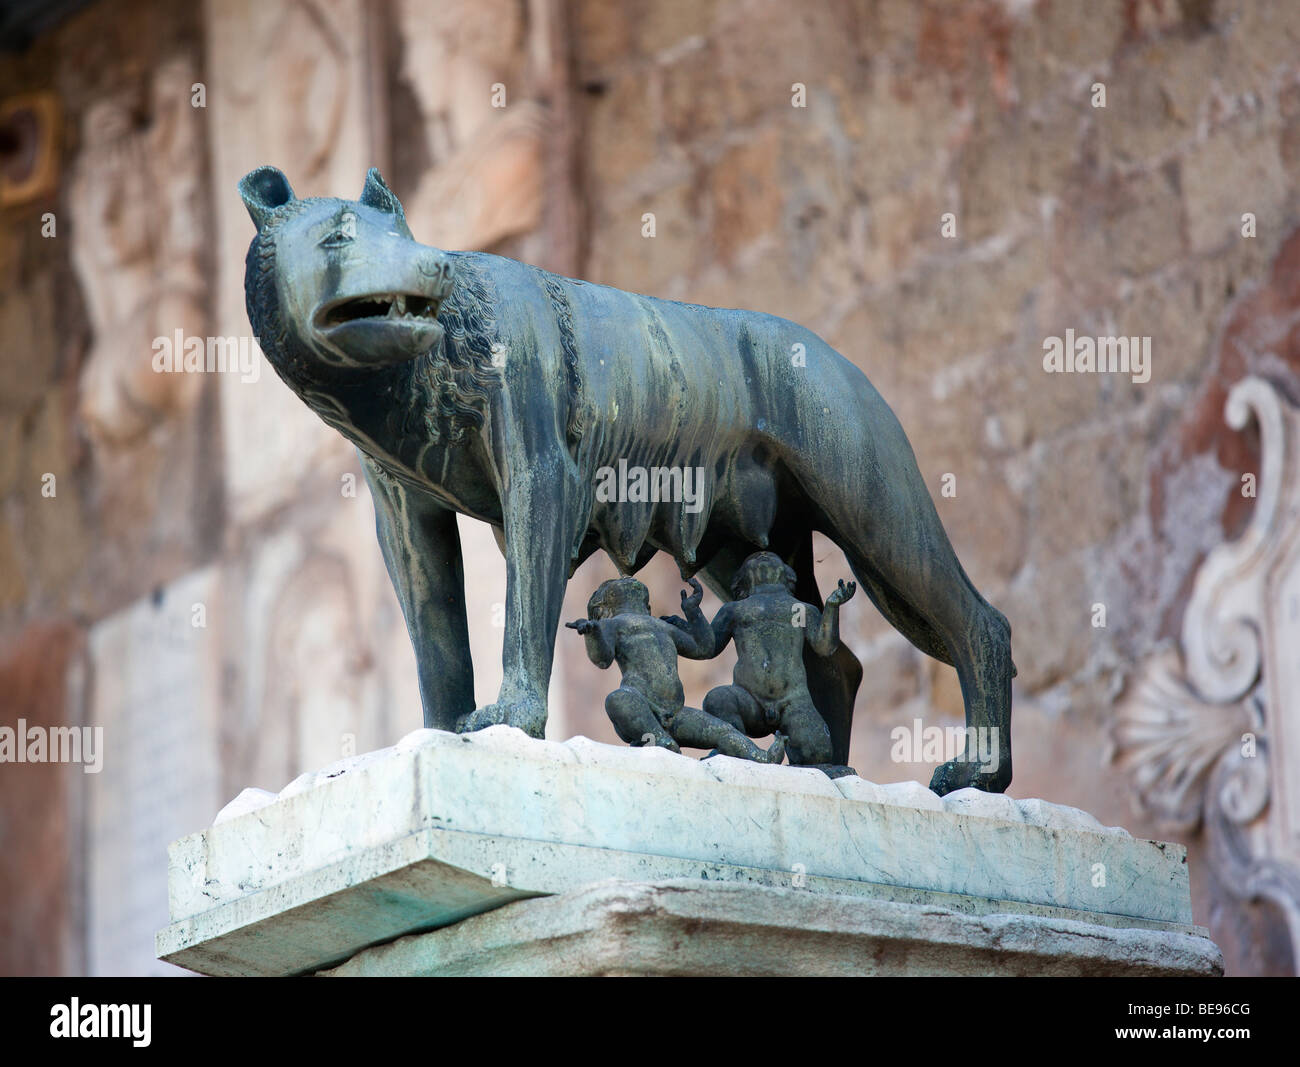 ITALY Rome Lazio Bronze statue of Romulus and Remus symbol of city feeding from She wolf beside Palazzo Senatorio - Stock Image